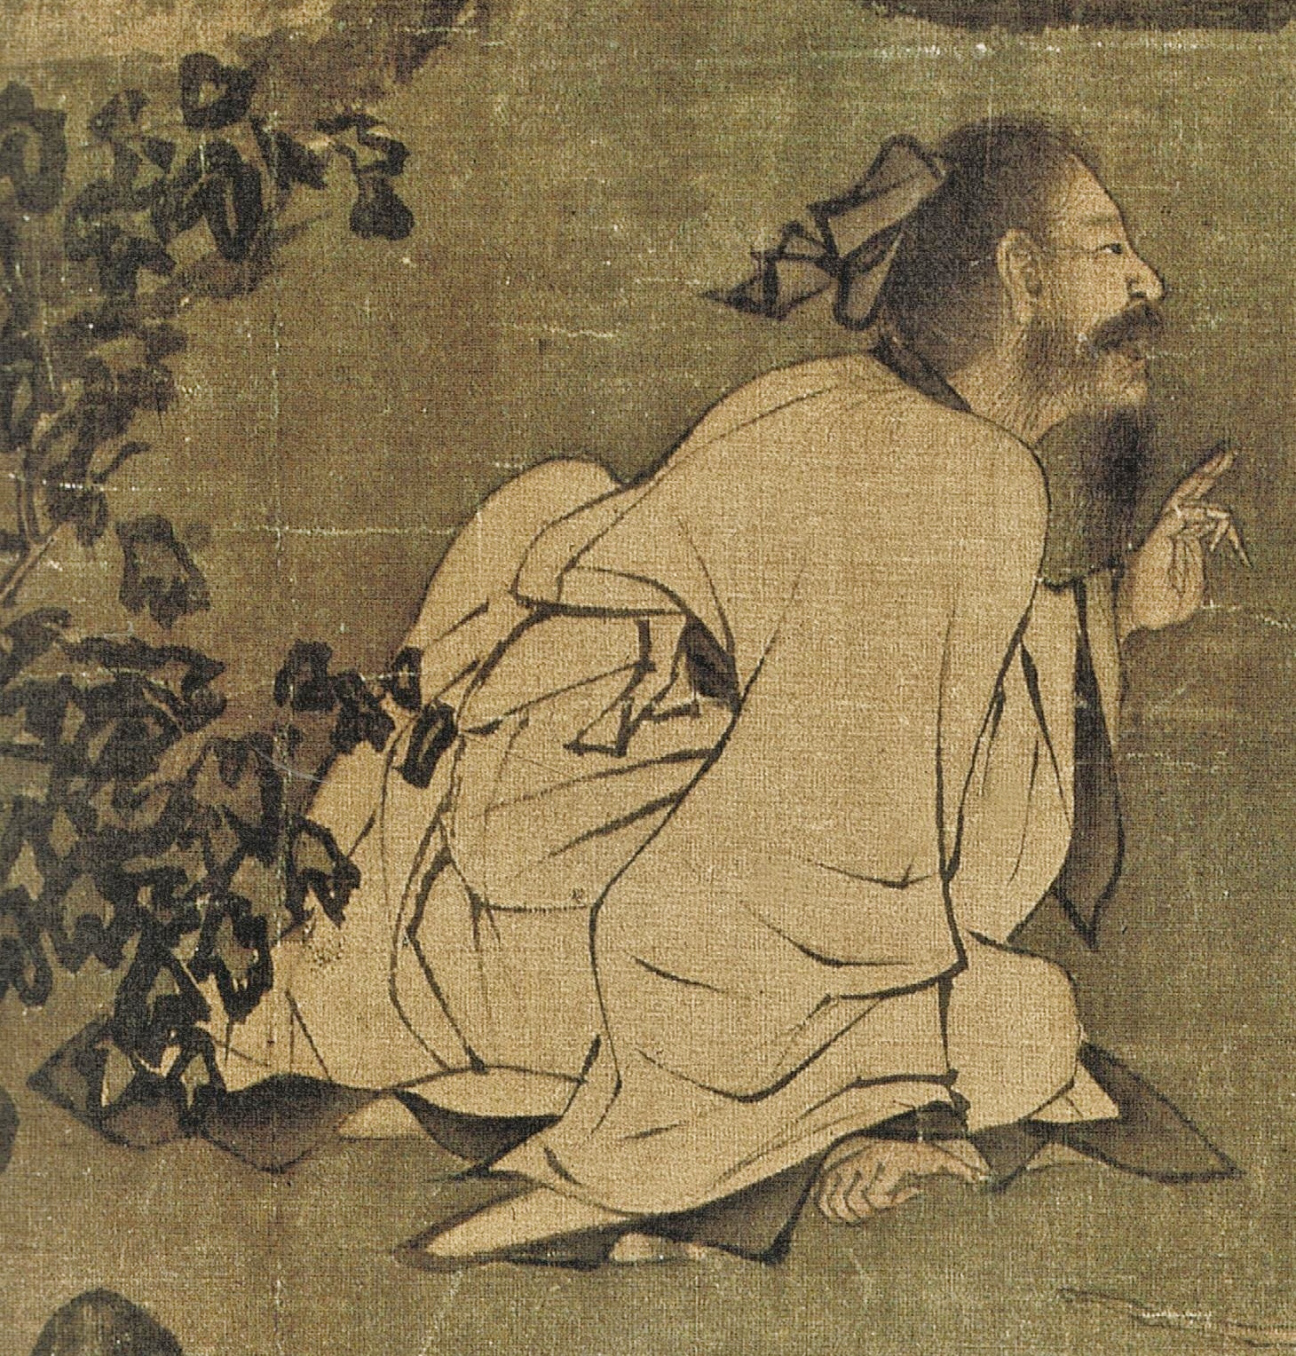 One of the brother leans forward making a point. The right hand presses on the ground and the left hand makes a gesture. He looks at the other brother while he talks to him. The high-spirited posture proves his determination of keeping his moral integrity under all circumstances. (Image: Secret China)